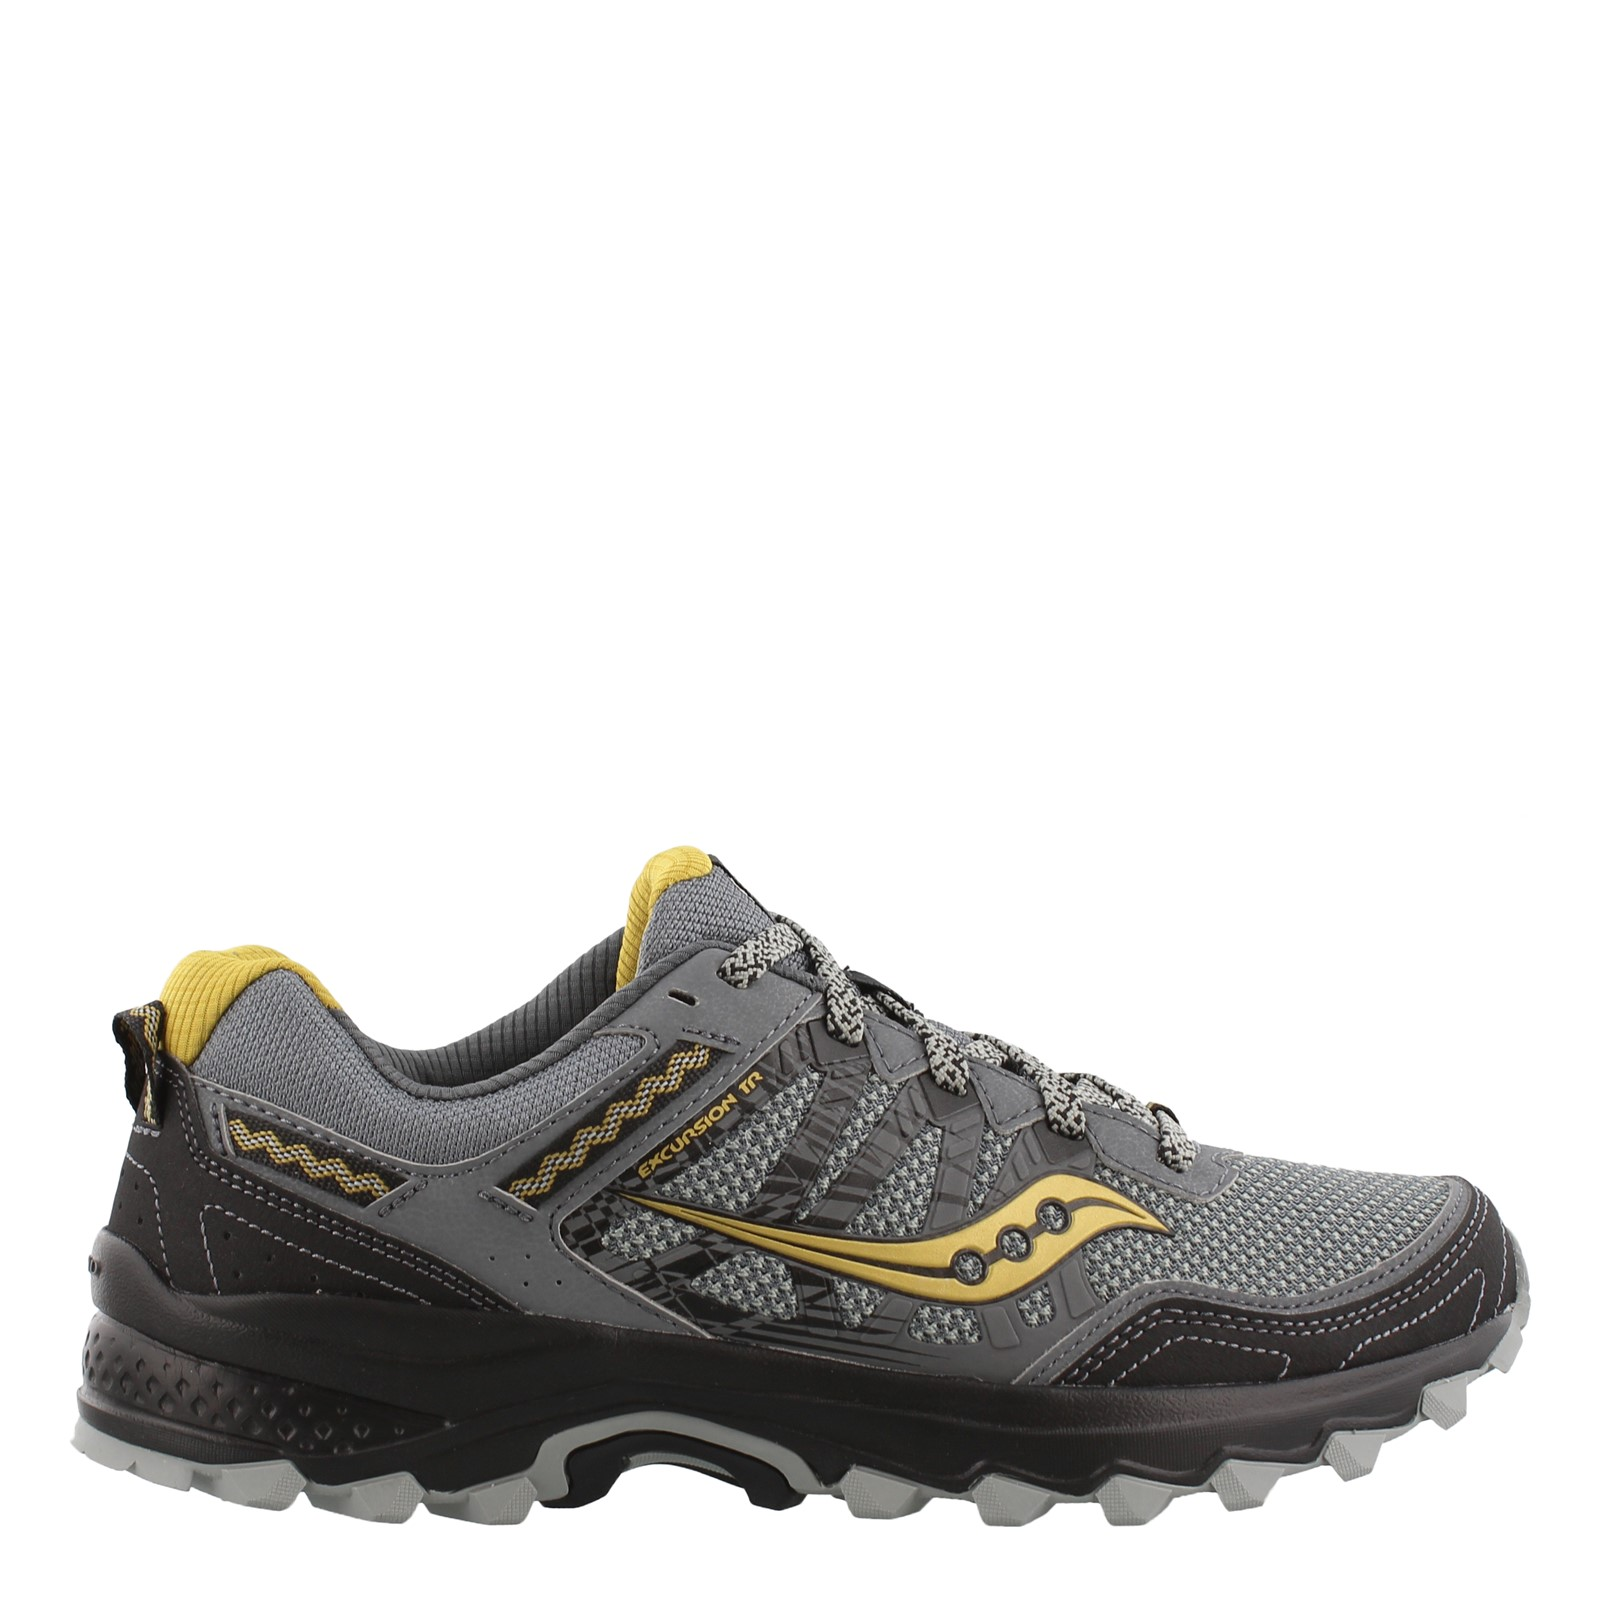 Men's Saucony, Excursion TR12 Trail Running Sneakers